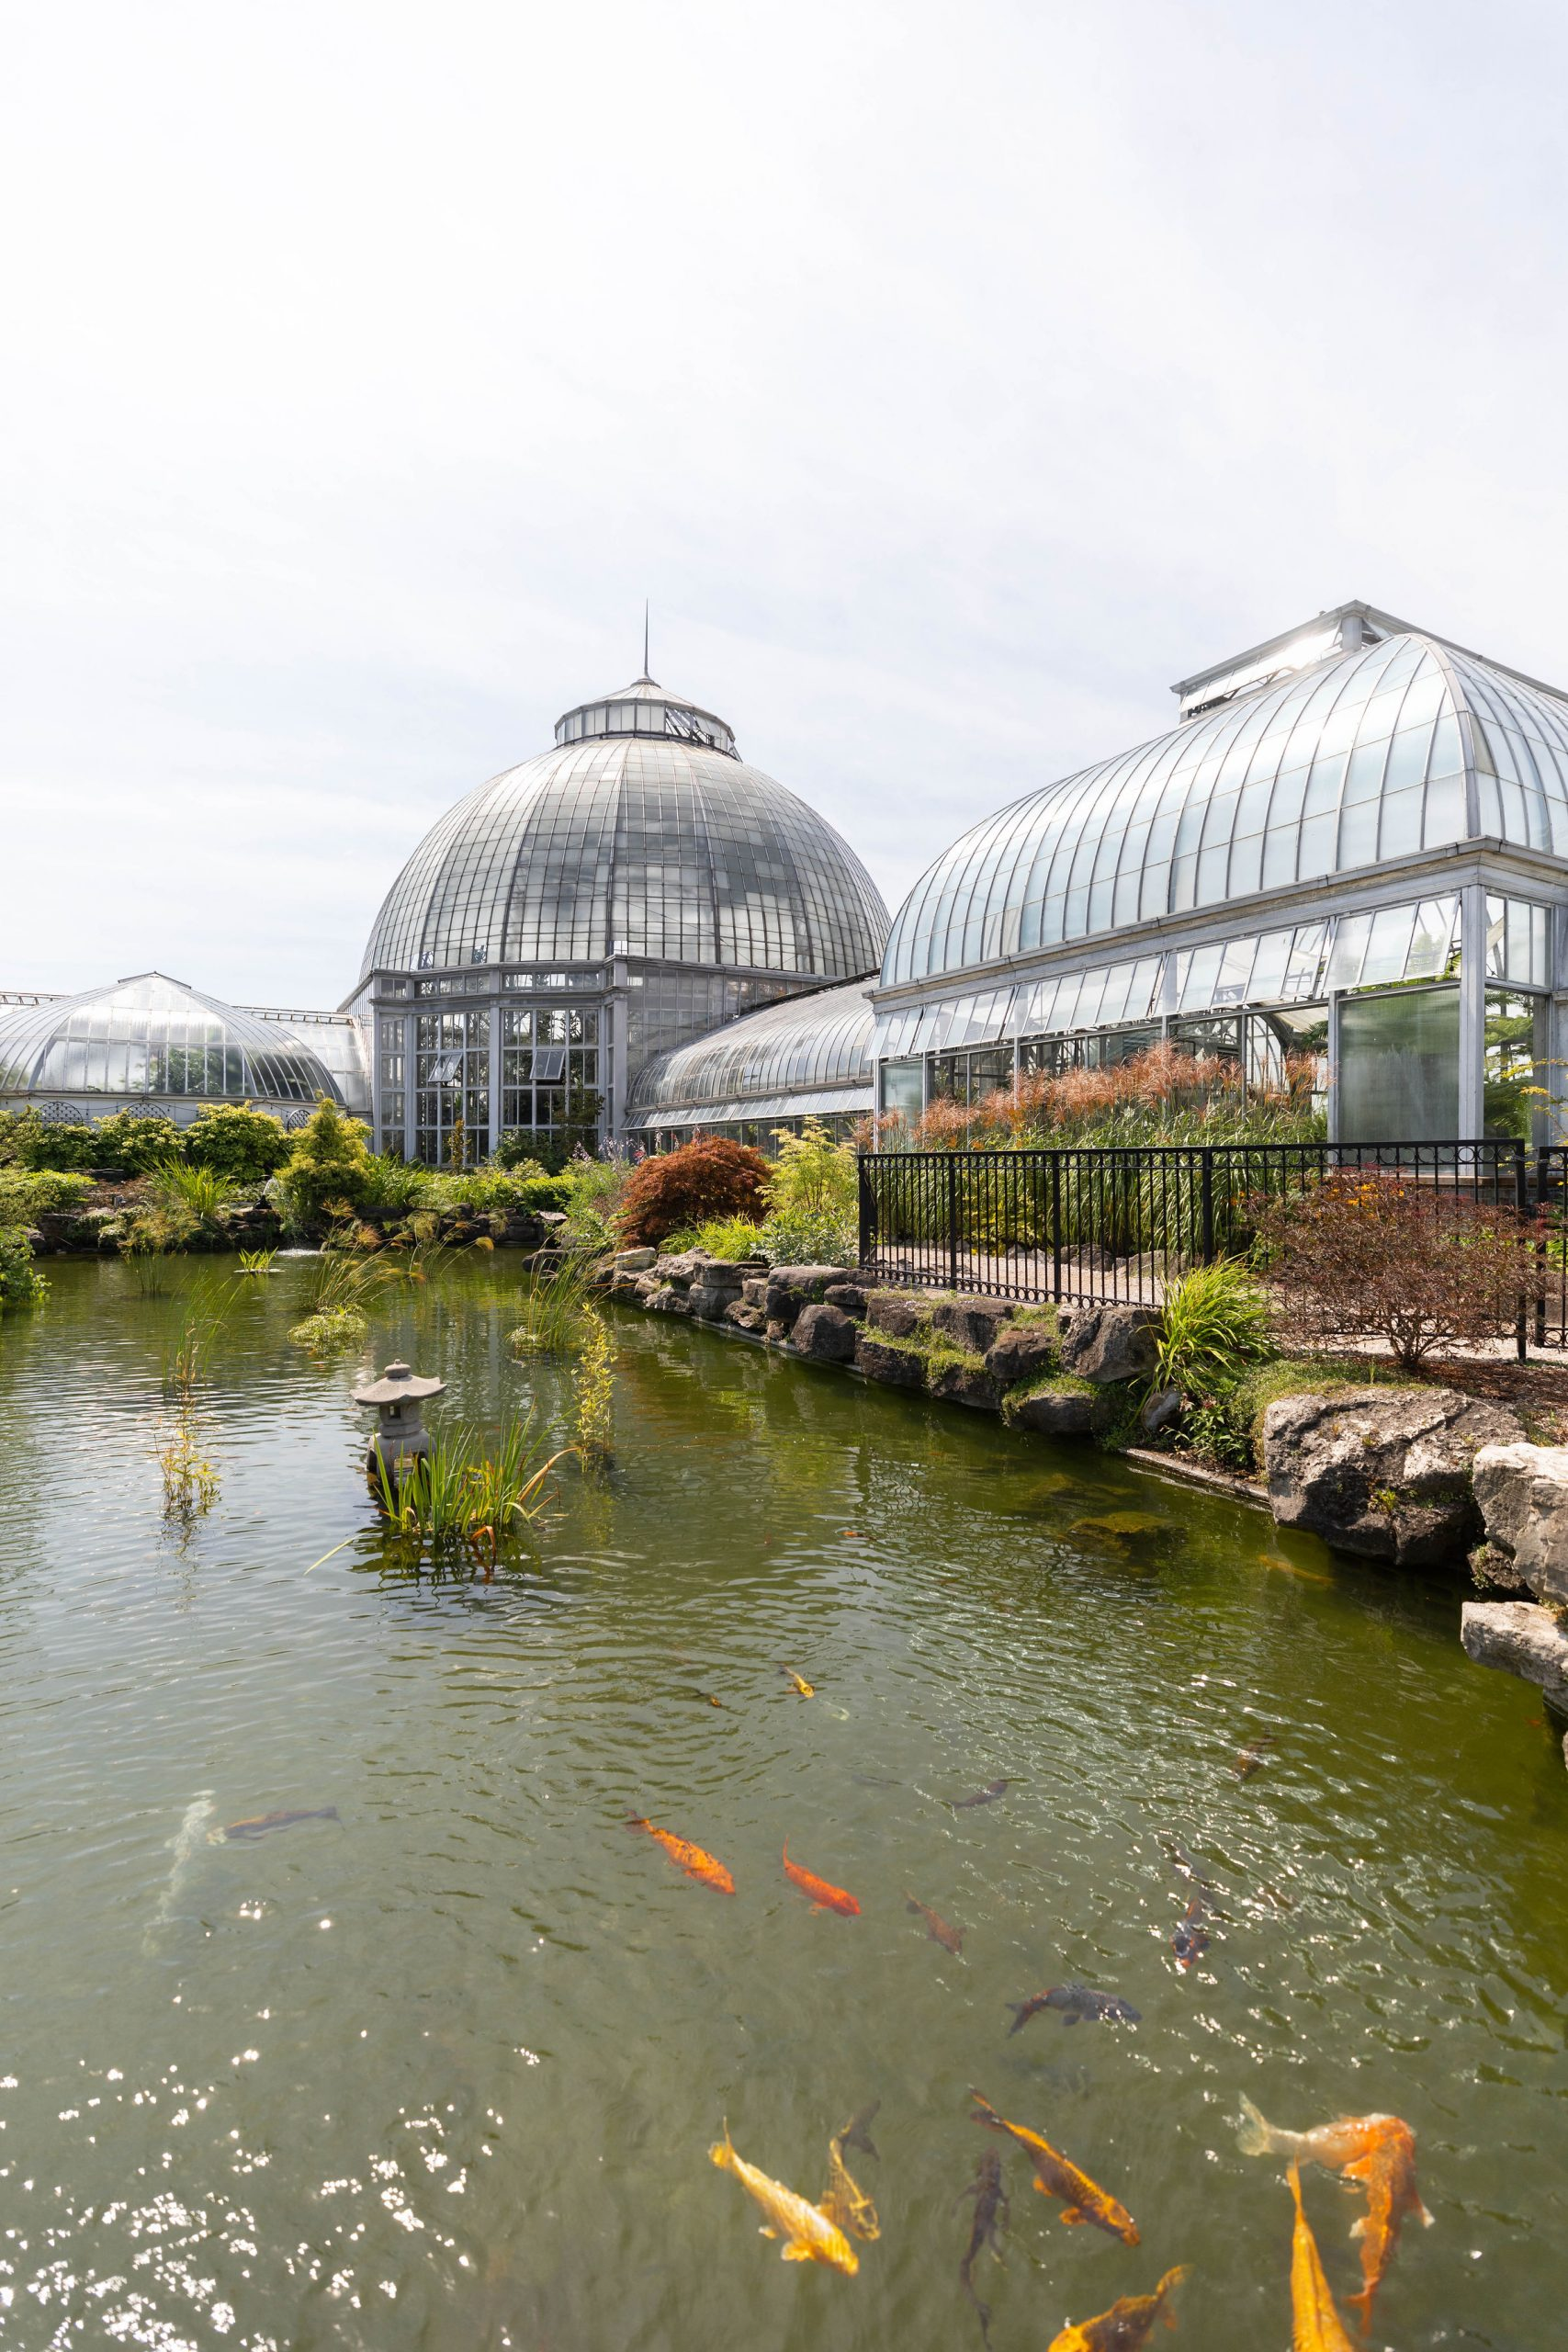 Belle Isle Tropical Conservatory and Aquarium in Detroit Michigan Photographed by Annie Fairfax